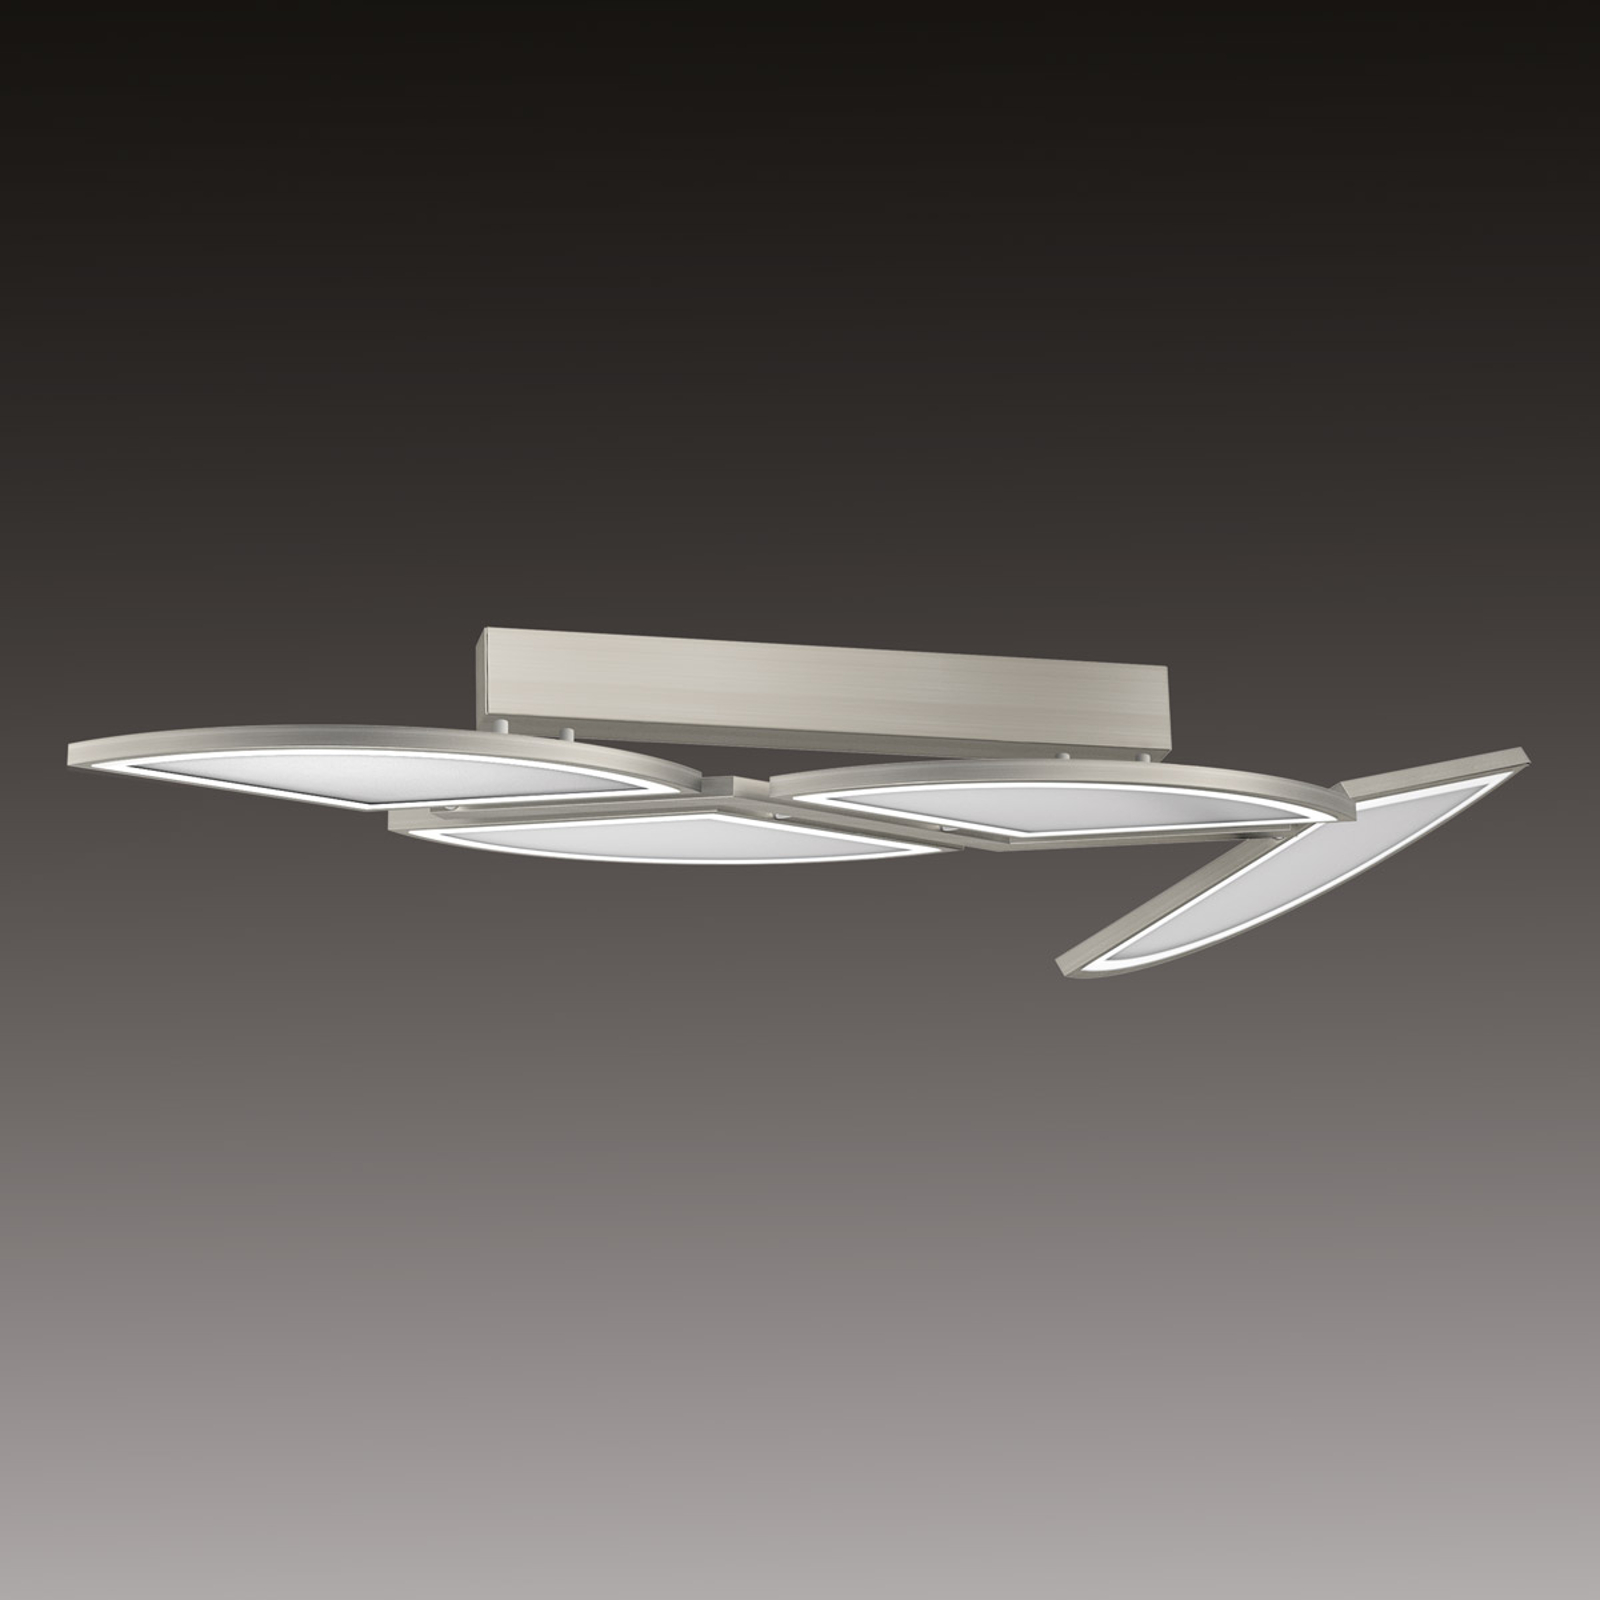 Movil - LED ceiling light with 4 light segments_3025249_1